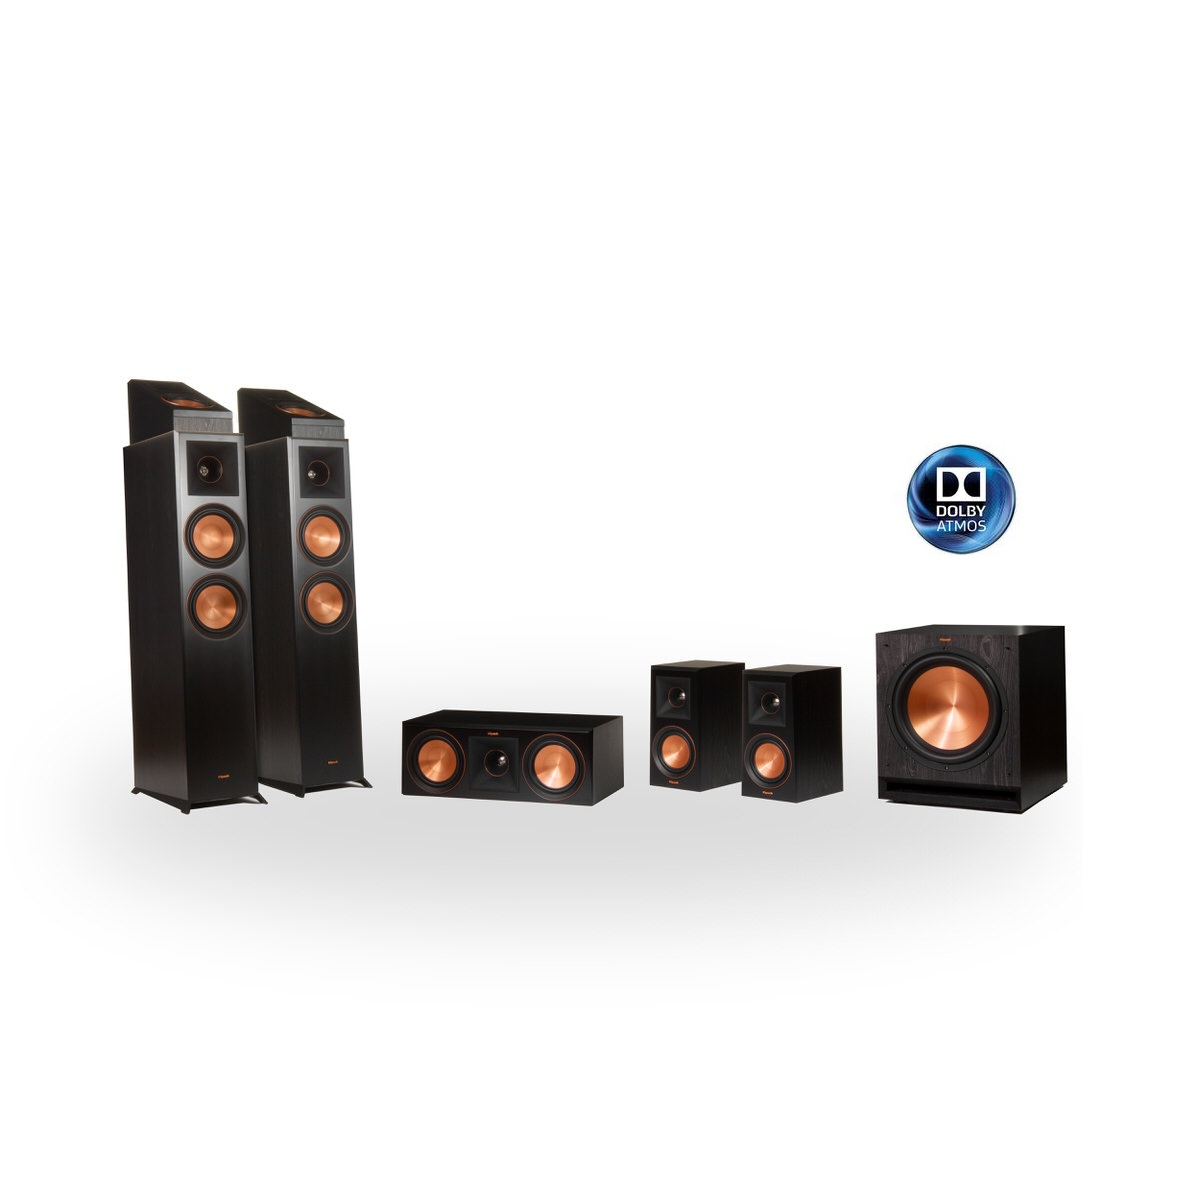 Klipsch Reference Premier RP-6000F 5.1.2 Dolby Atmos Home Theater System (Black)